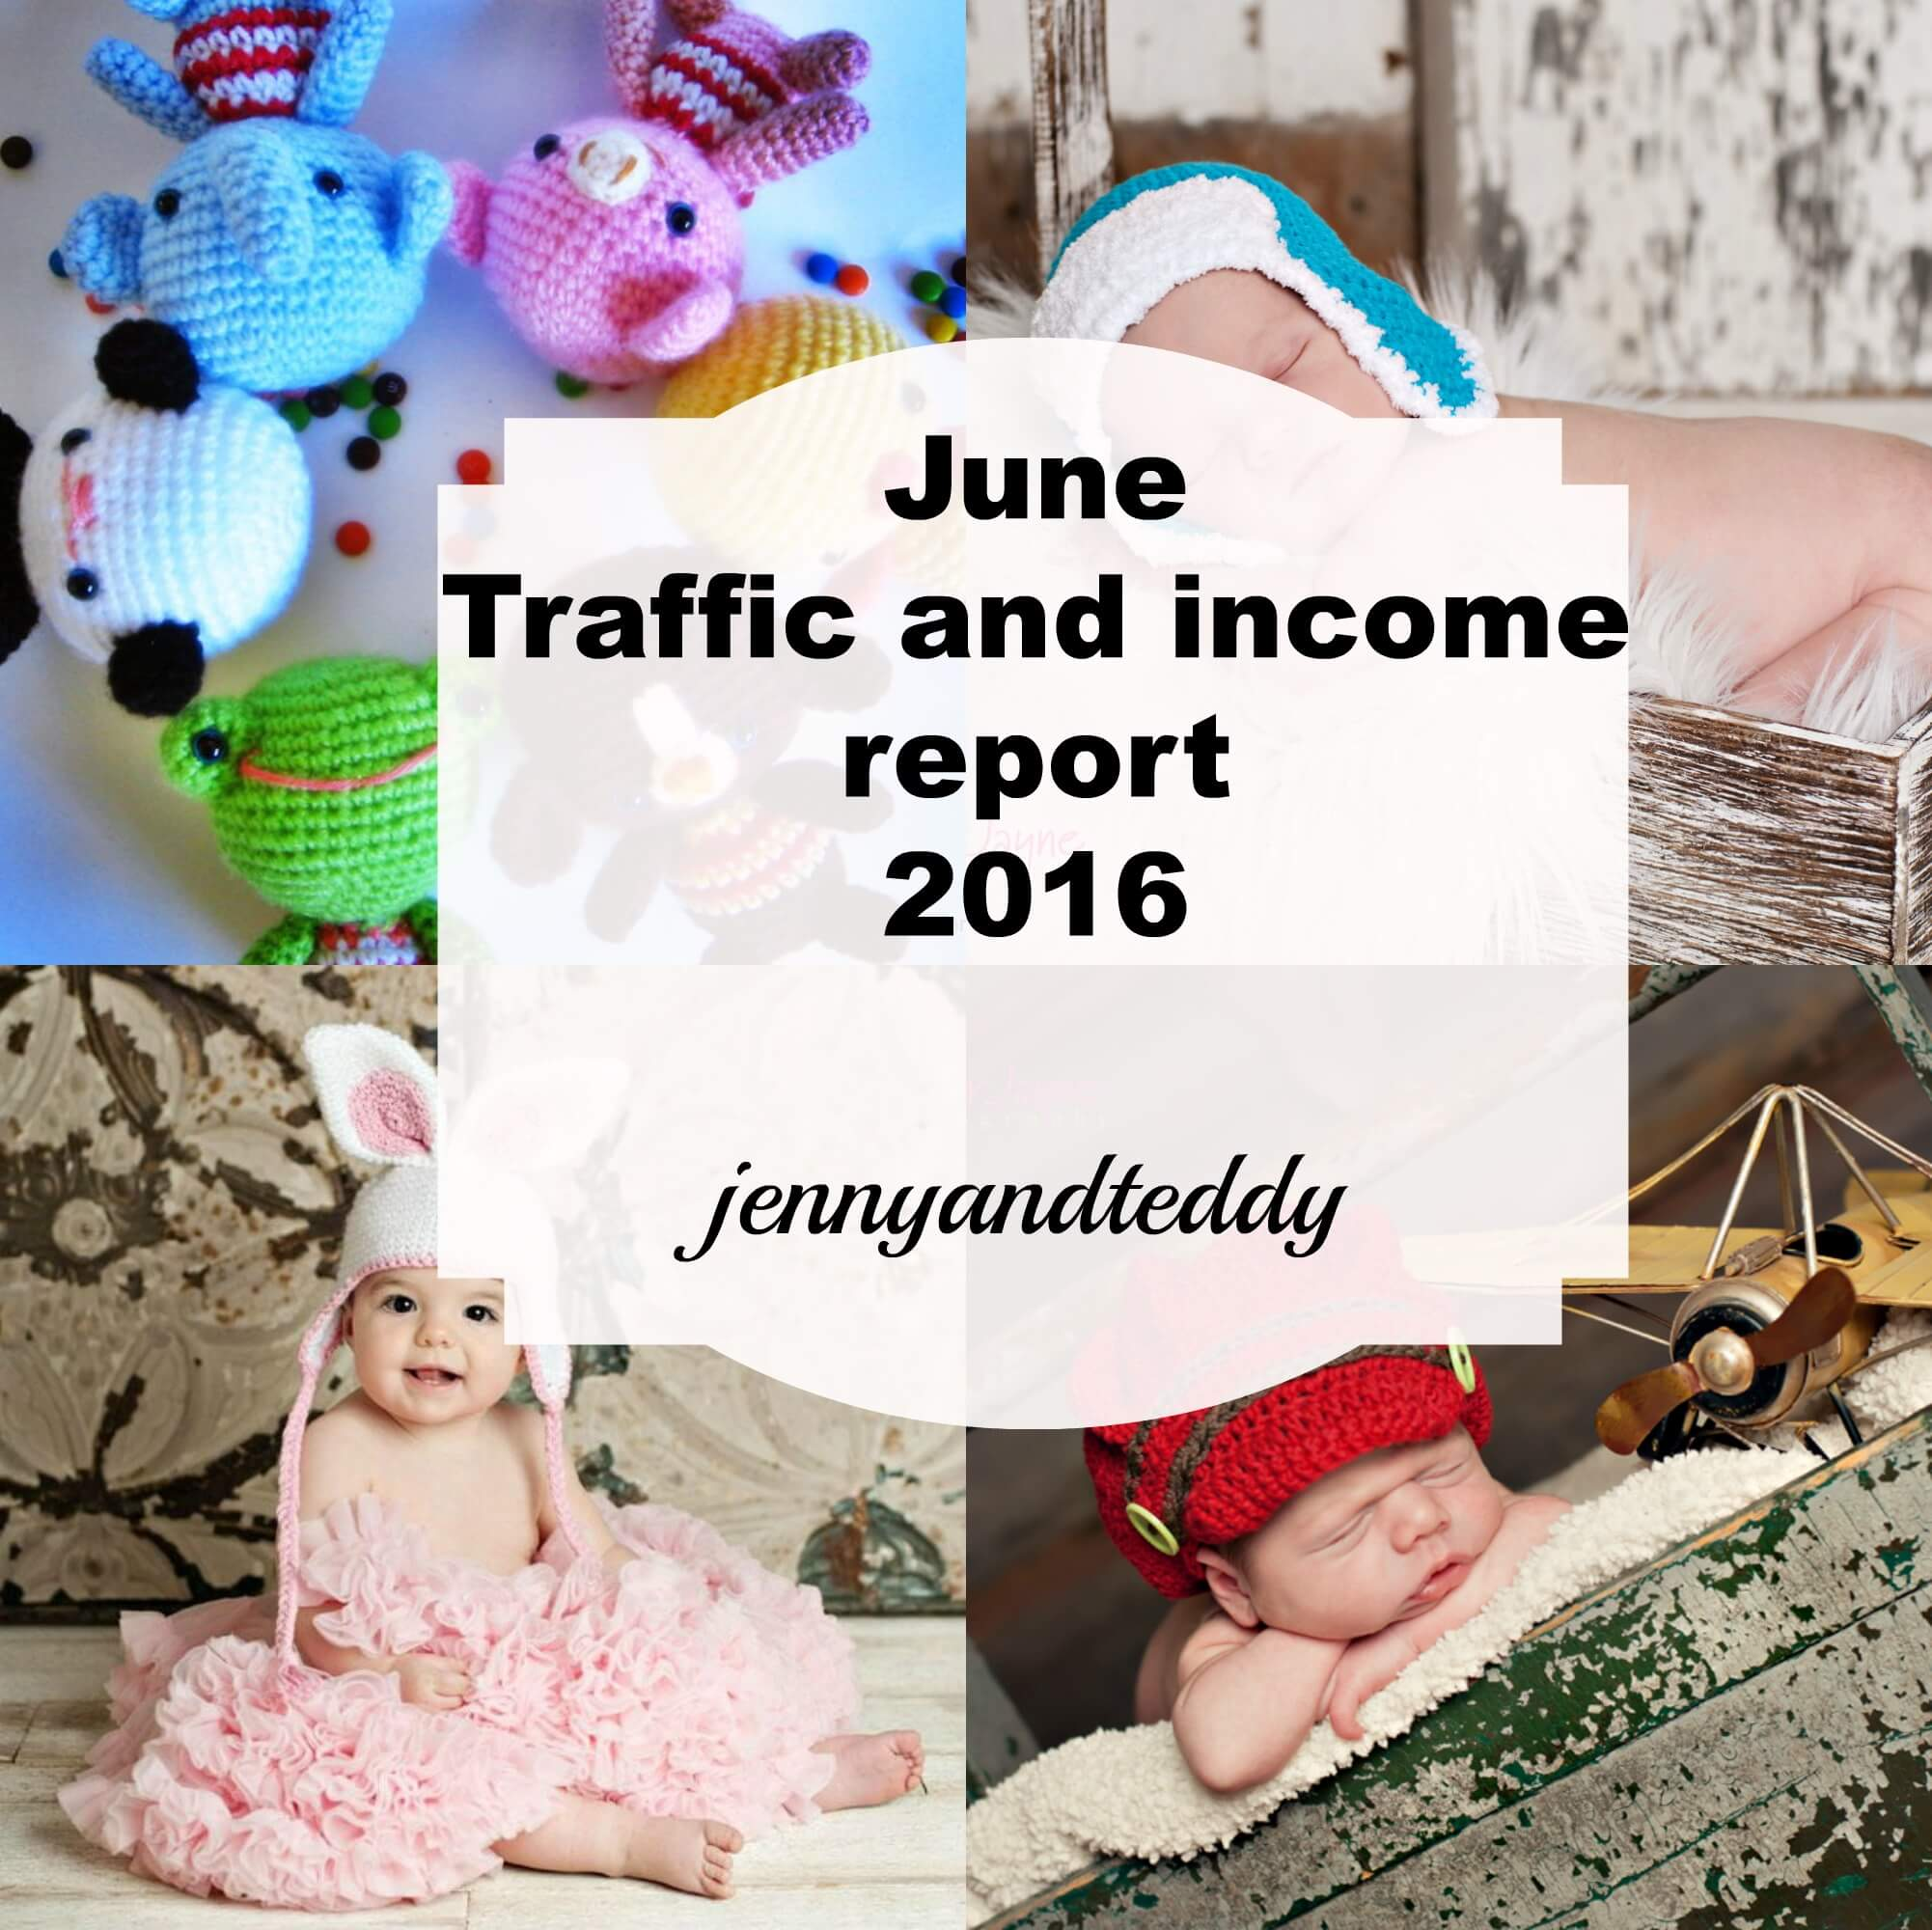 june traffic and income report 2016 by jennyandteddy